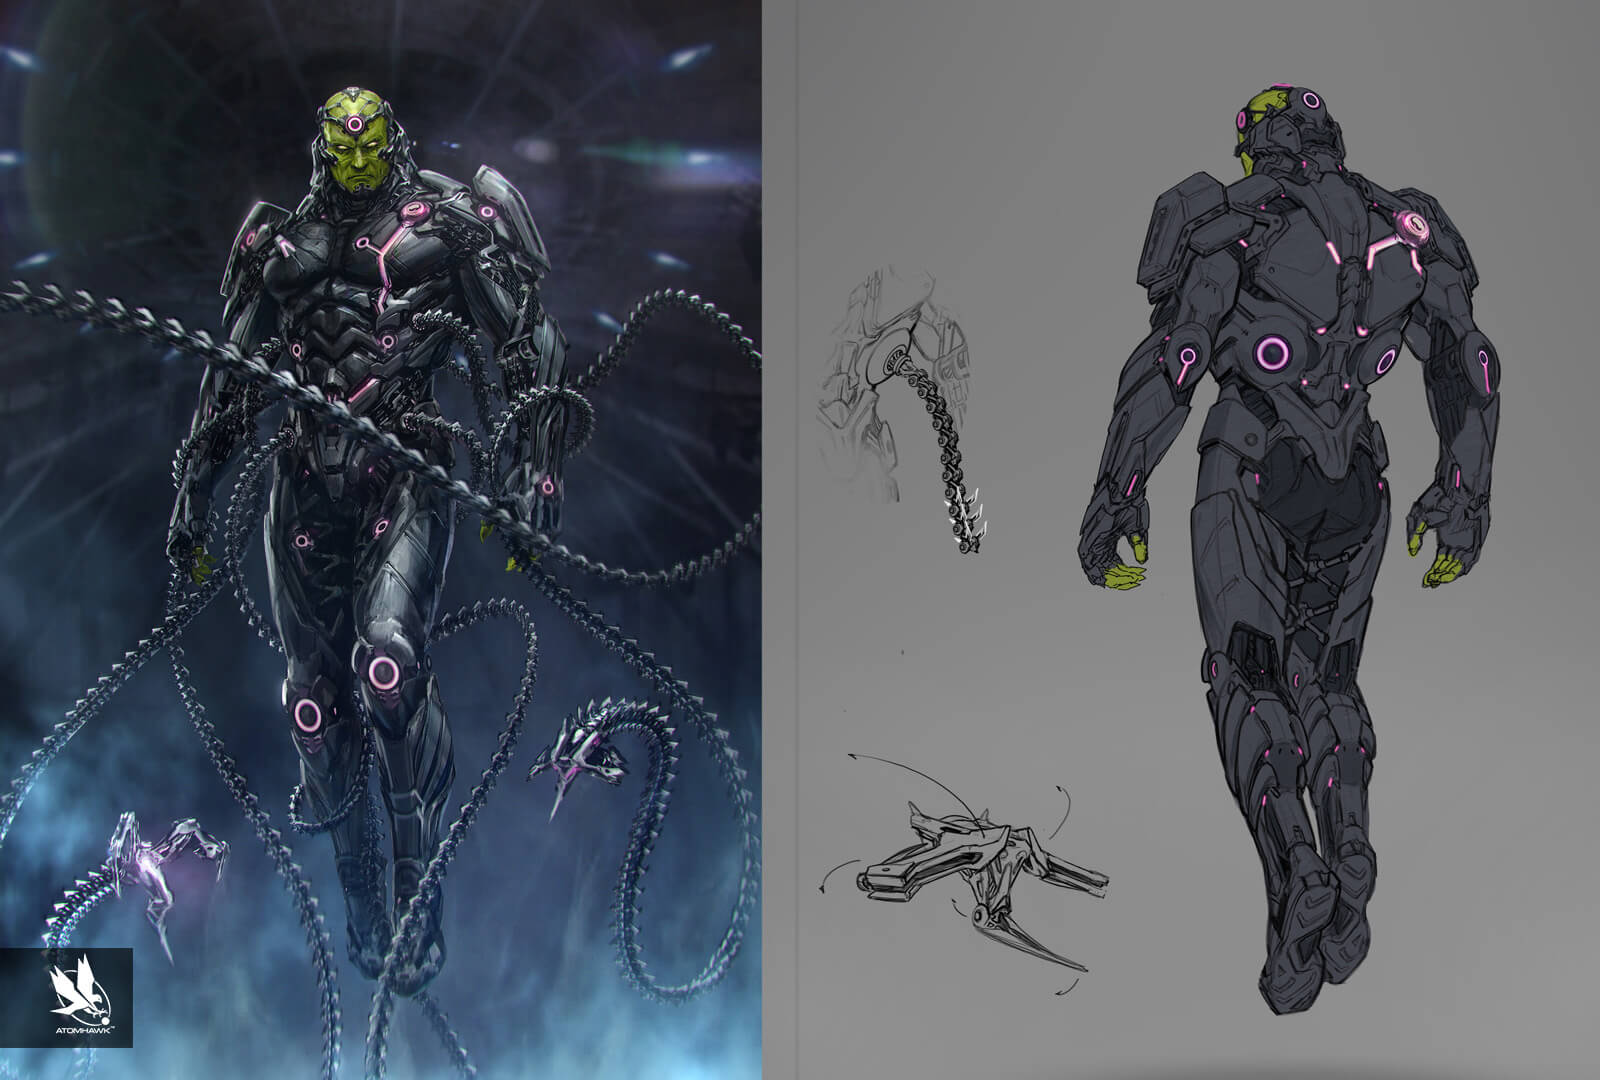 Here is some Character Art we did for Warner Brothers NetherRealm Studio on Injustice2 - Braniac